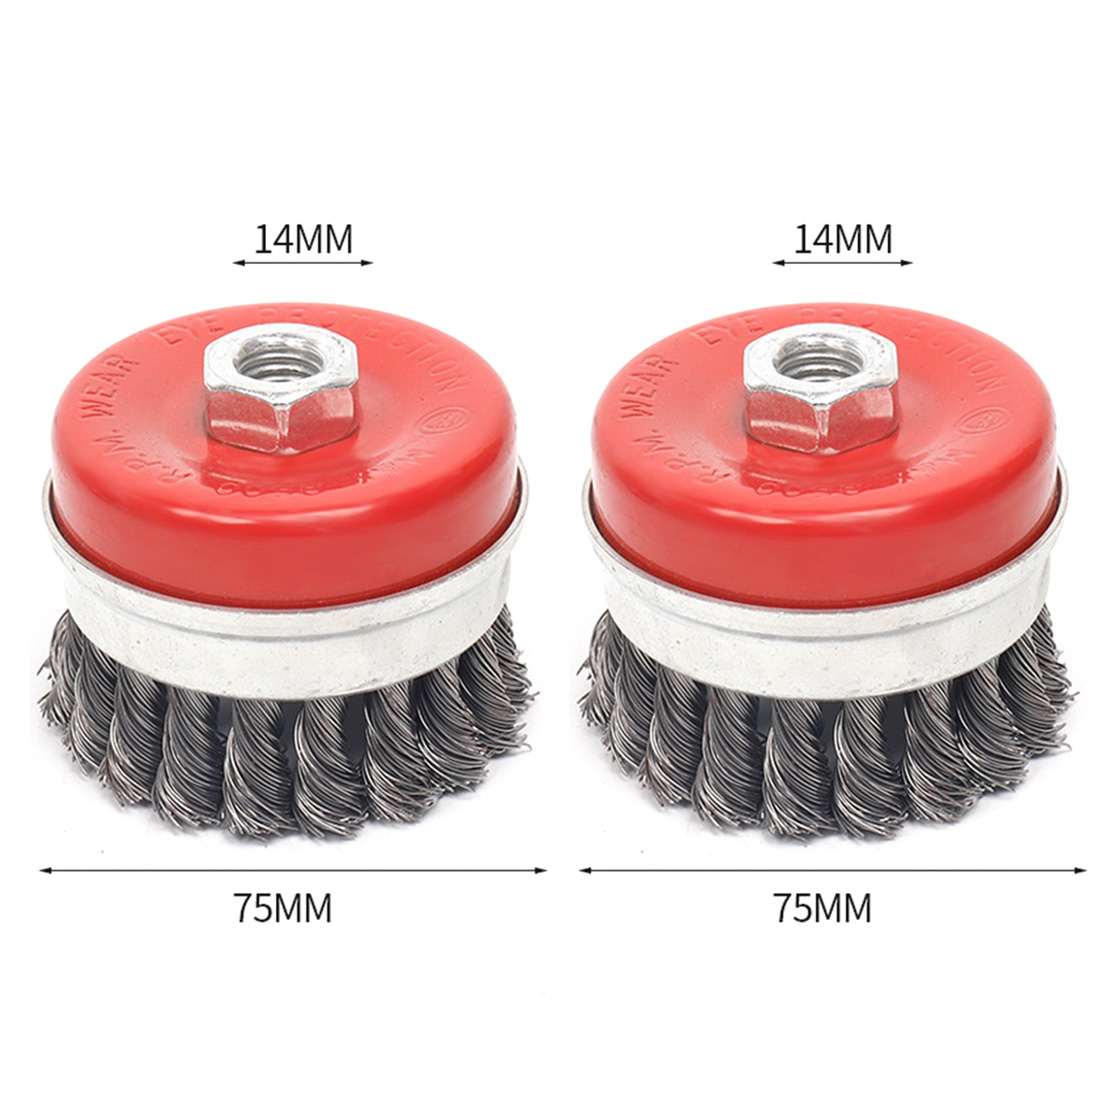 "Carbon steel Wire Wheel Brush Power Tools Supplies 2pcs 4 1/2"" angle grinders